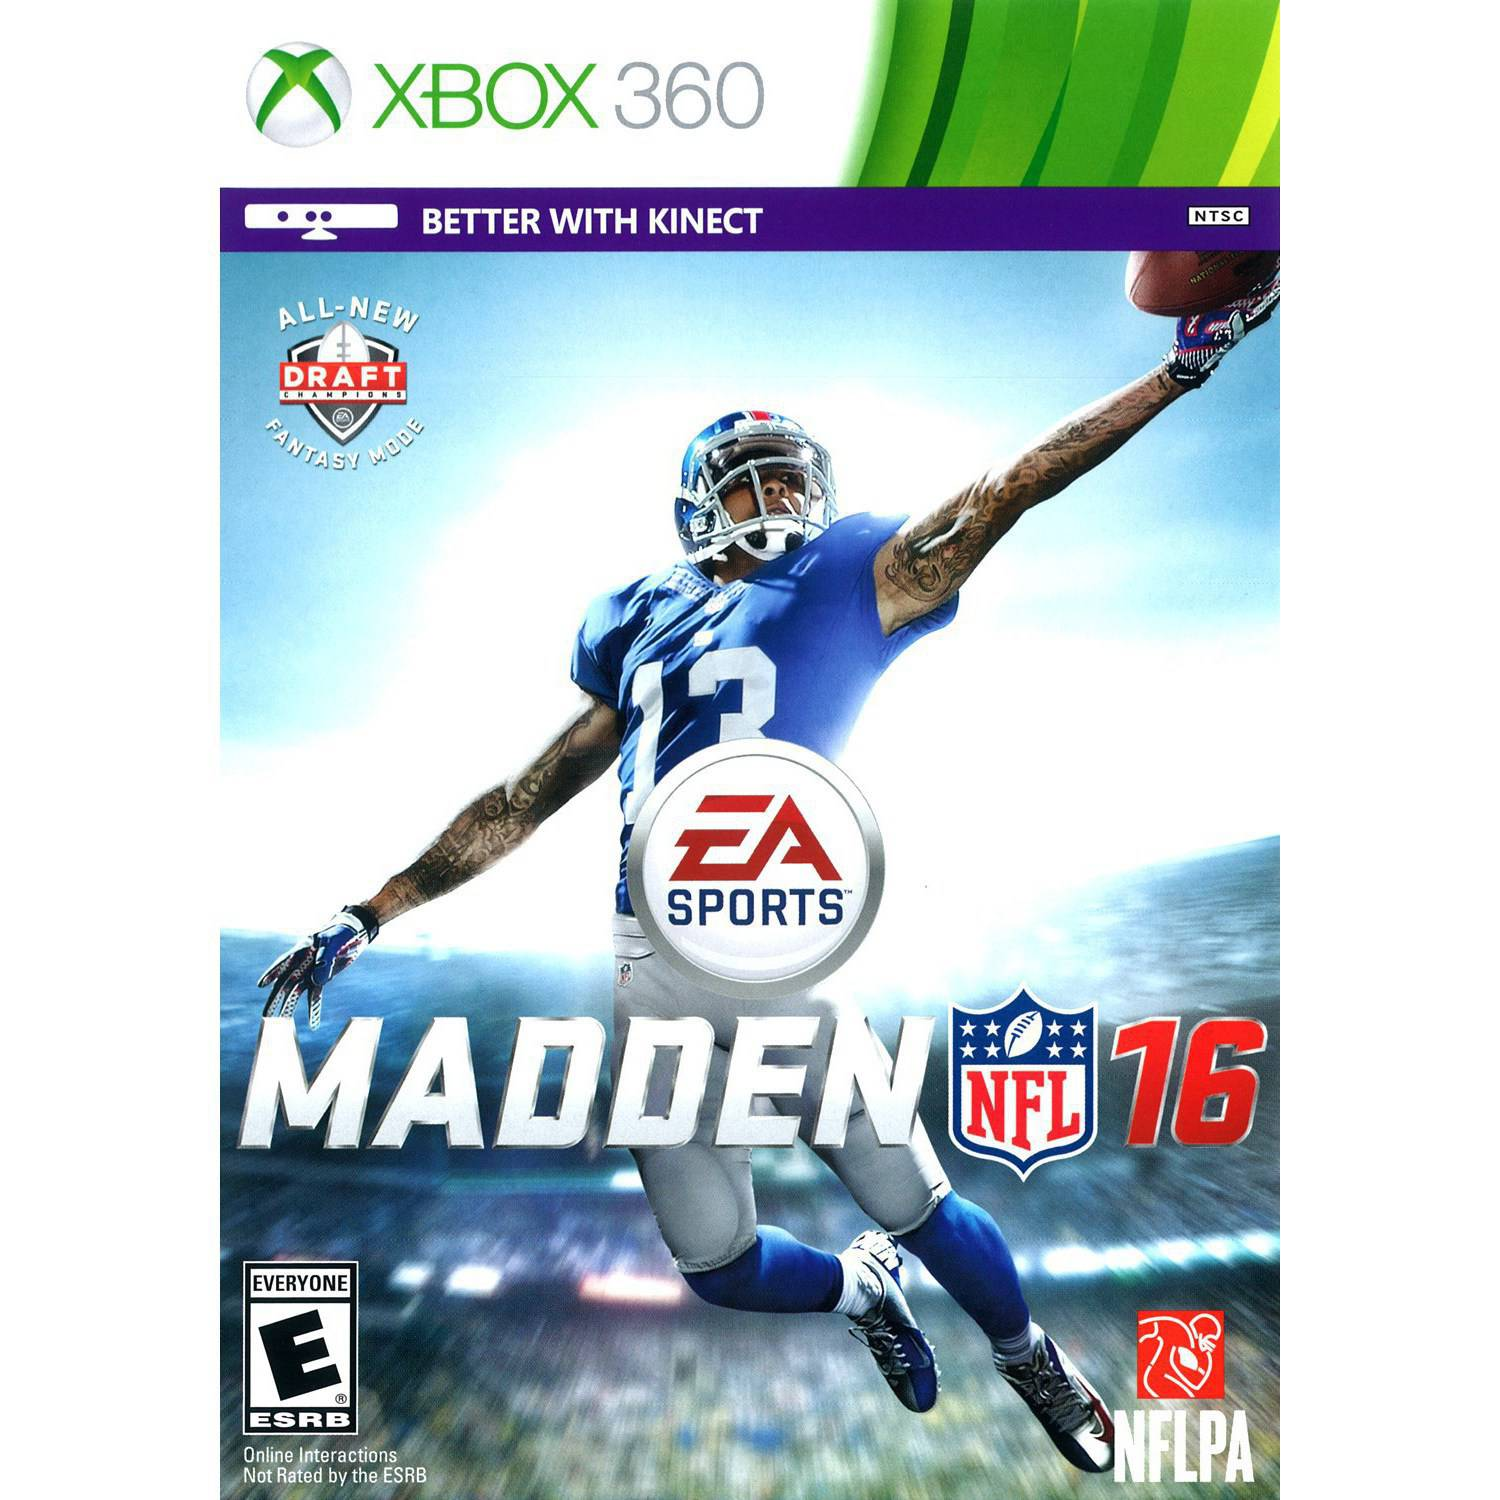 Madden NFL 16, Electronic Arts, Xbox 360, 014633733792